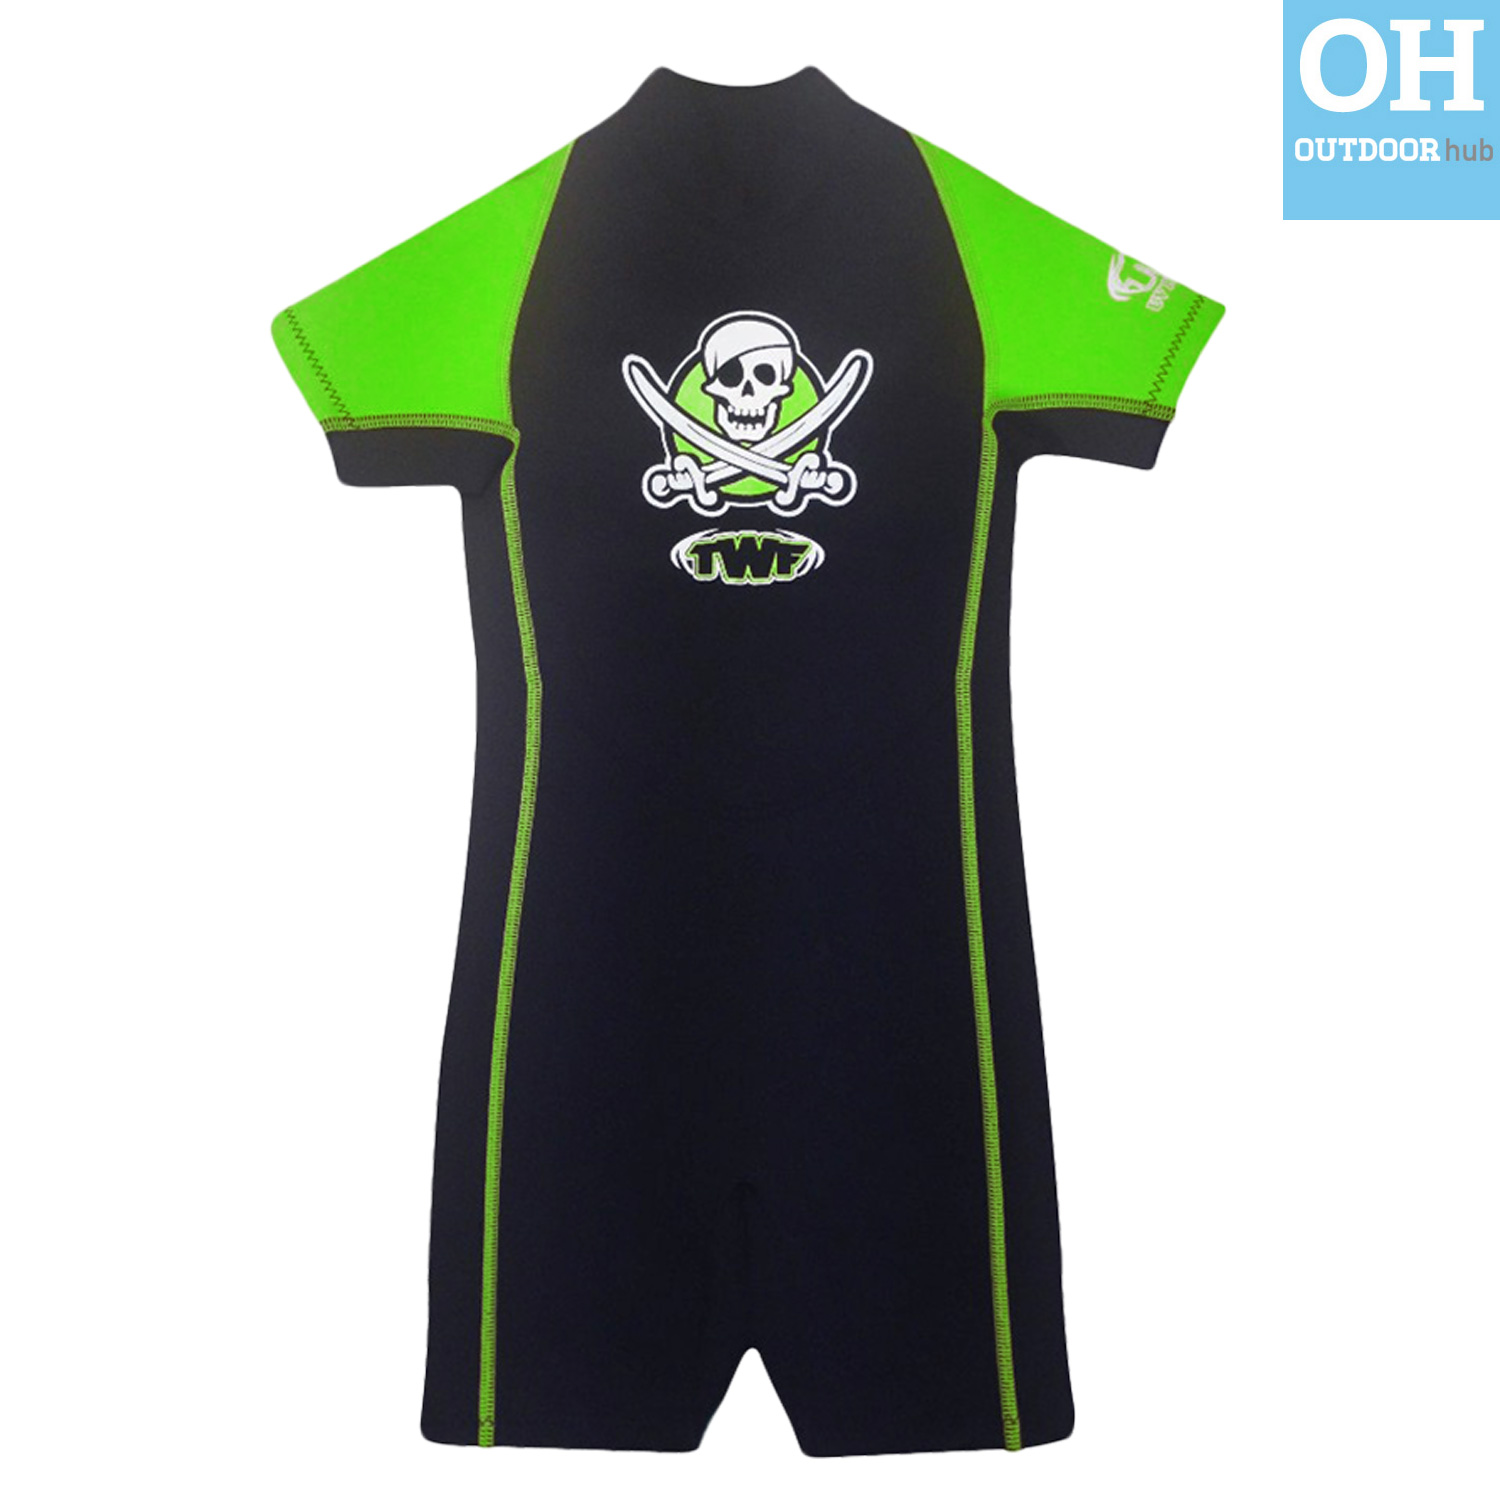 TWF-2mm-Kids-Shortie-Wetsuit-Childs-Shorty-Boys-Girls-Beach-Swim-Baby-Toddler thumbnail 14